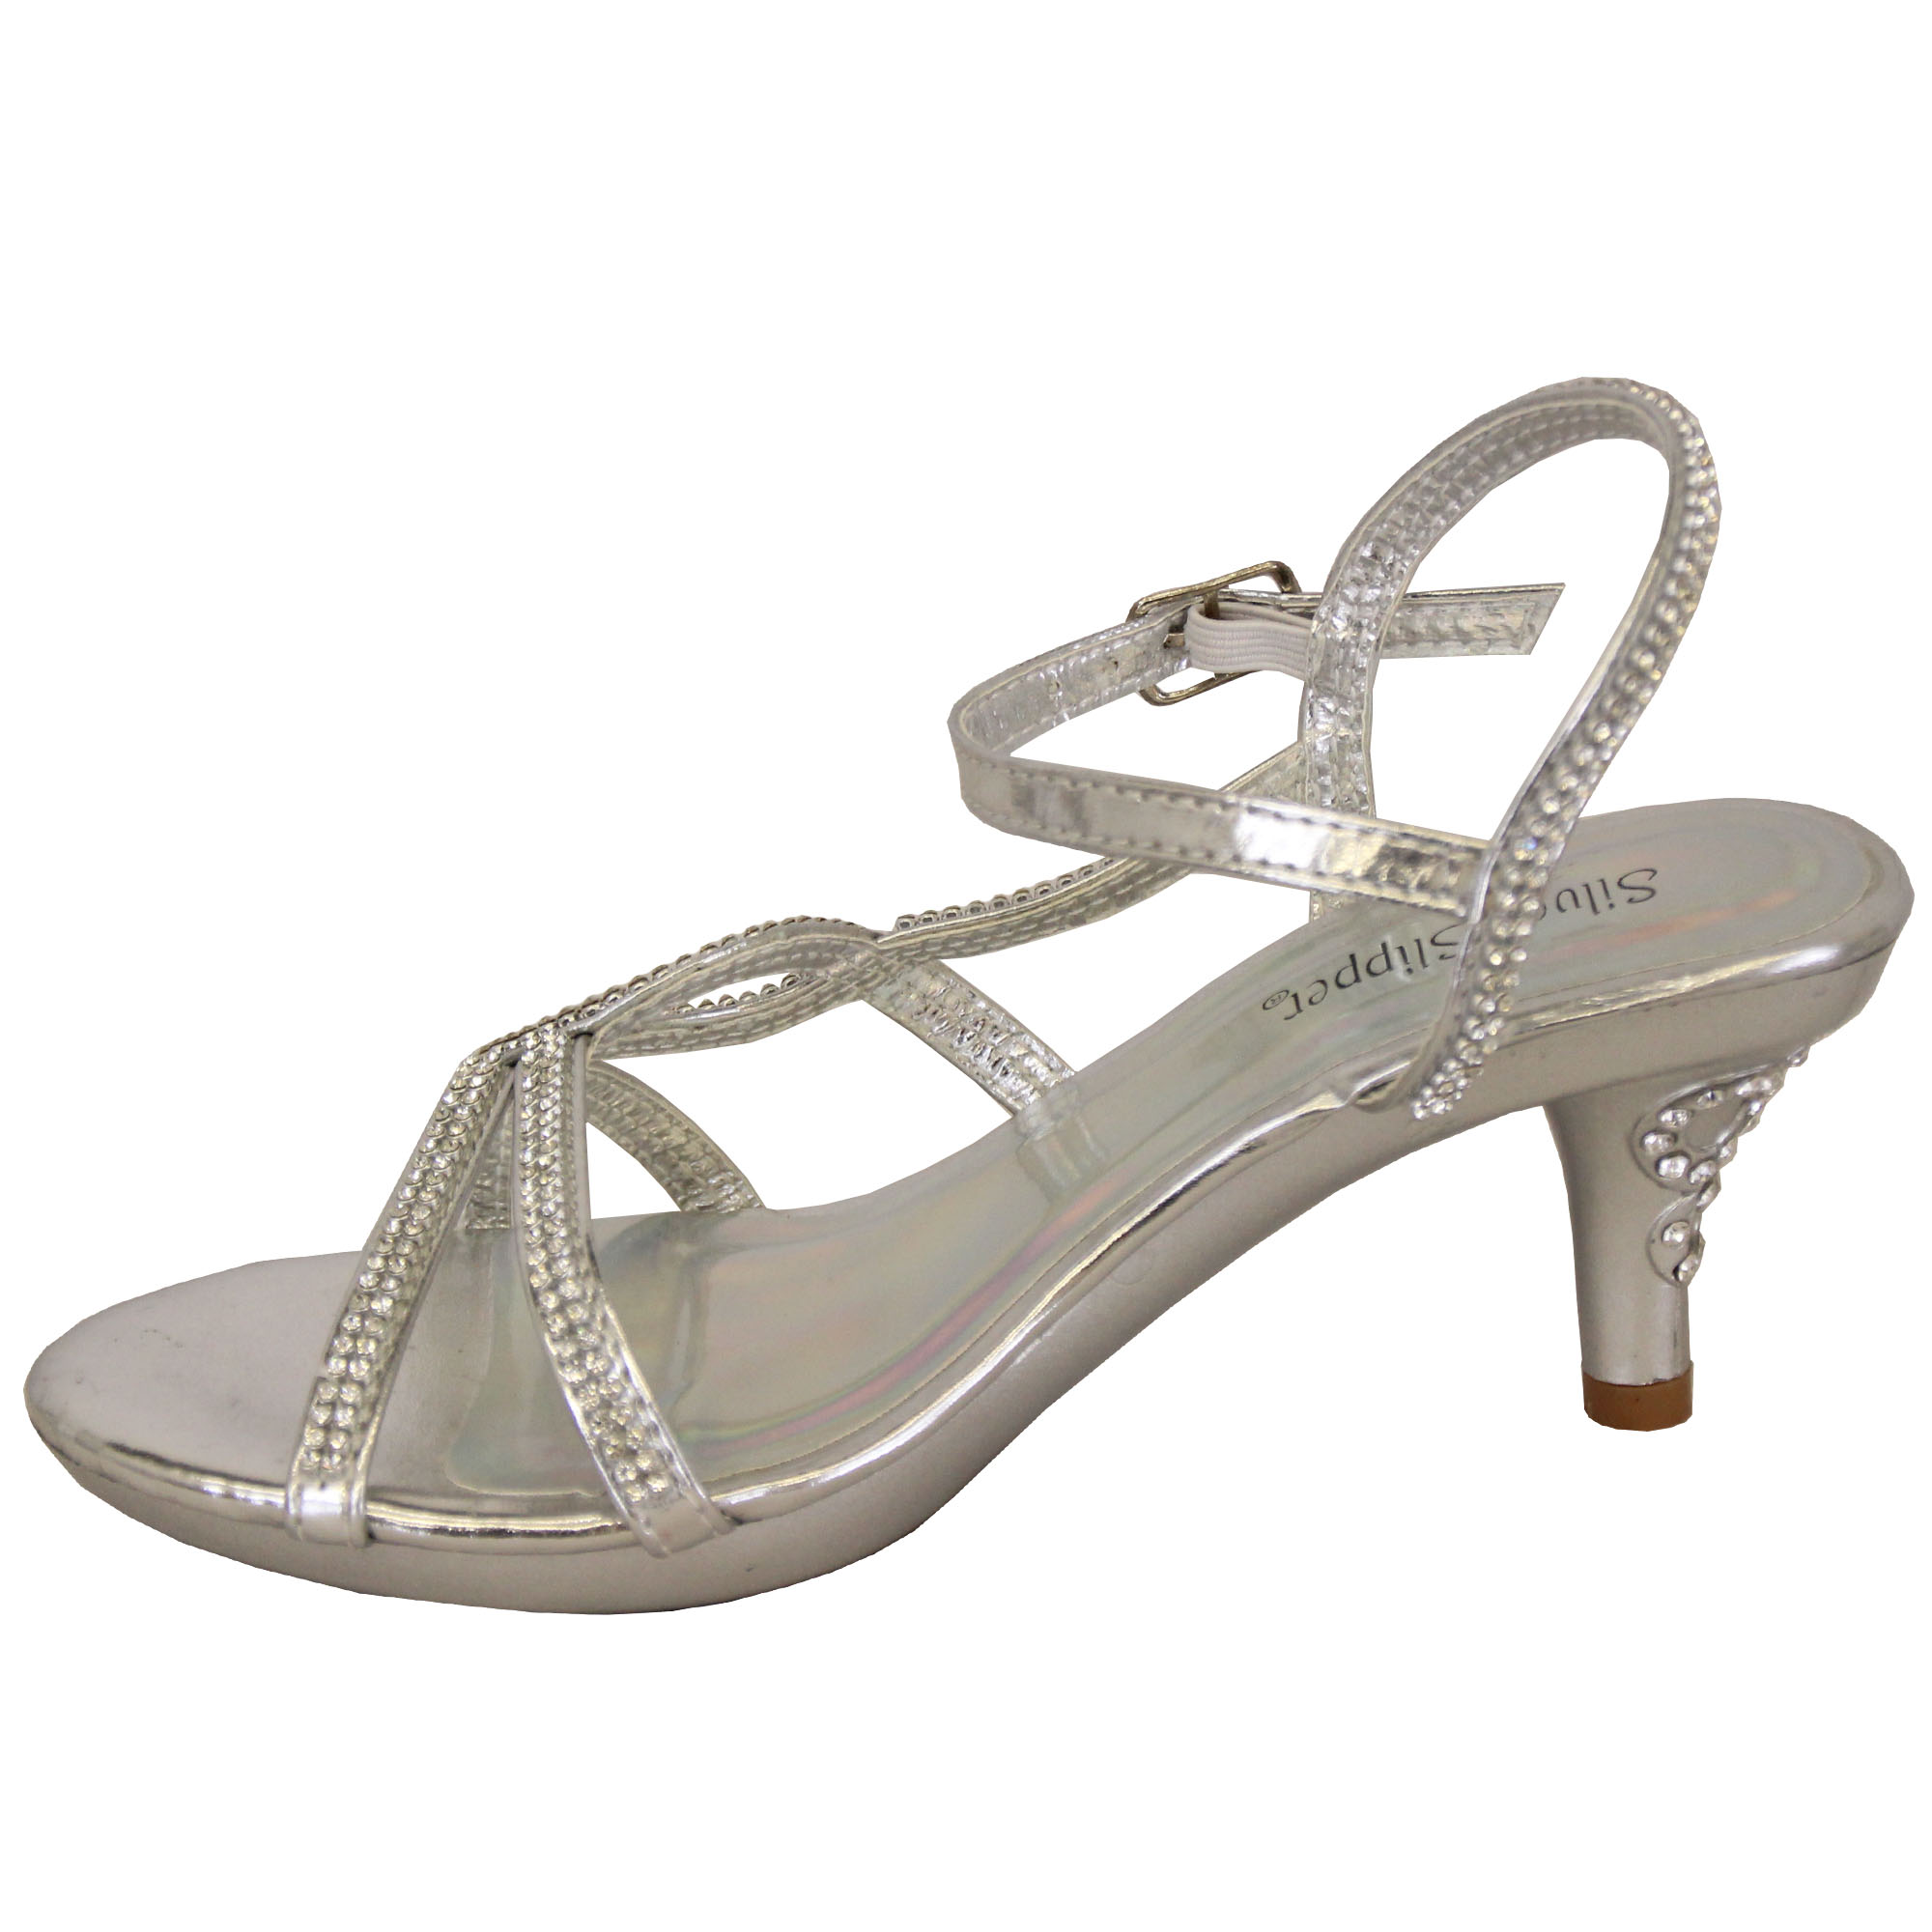 Details about Girls Mid Heel Sandals Kids Diamante Ankle Strap Open Toe Party Wedding Fashion